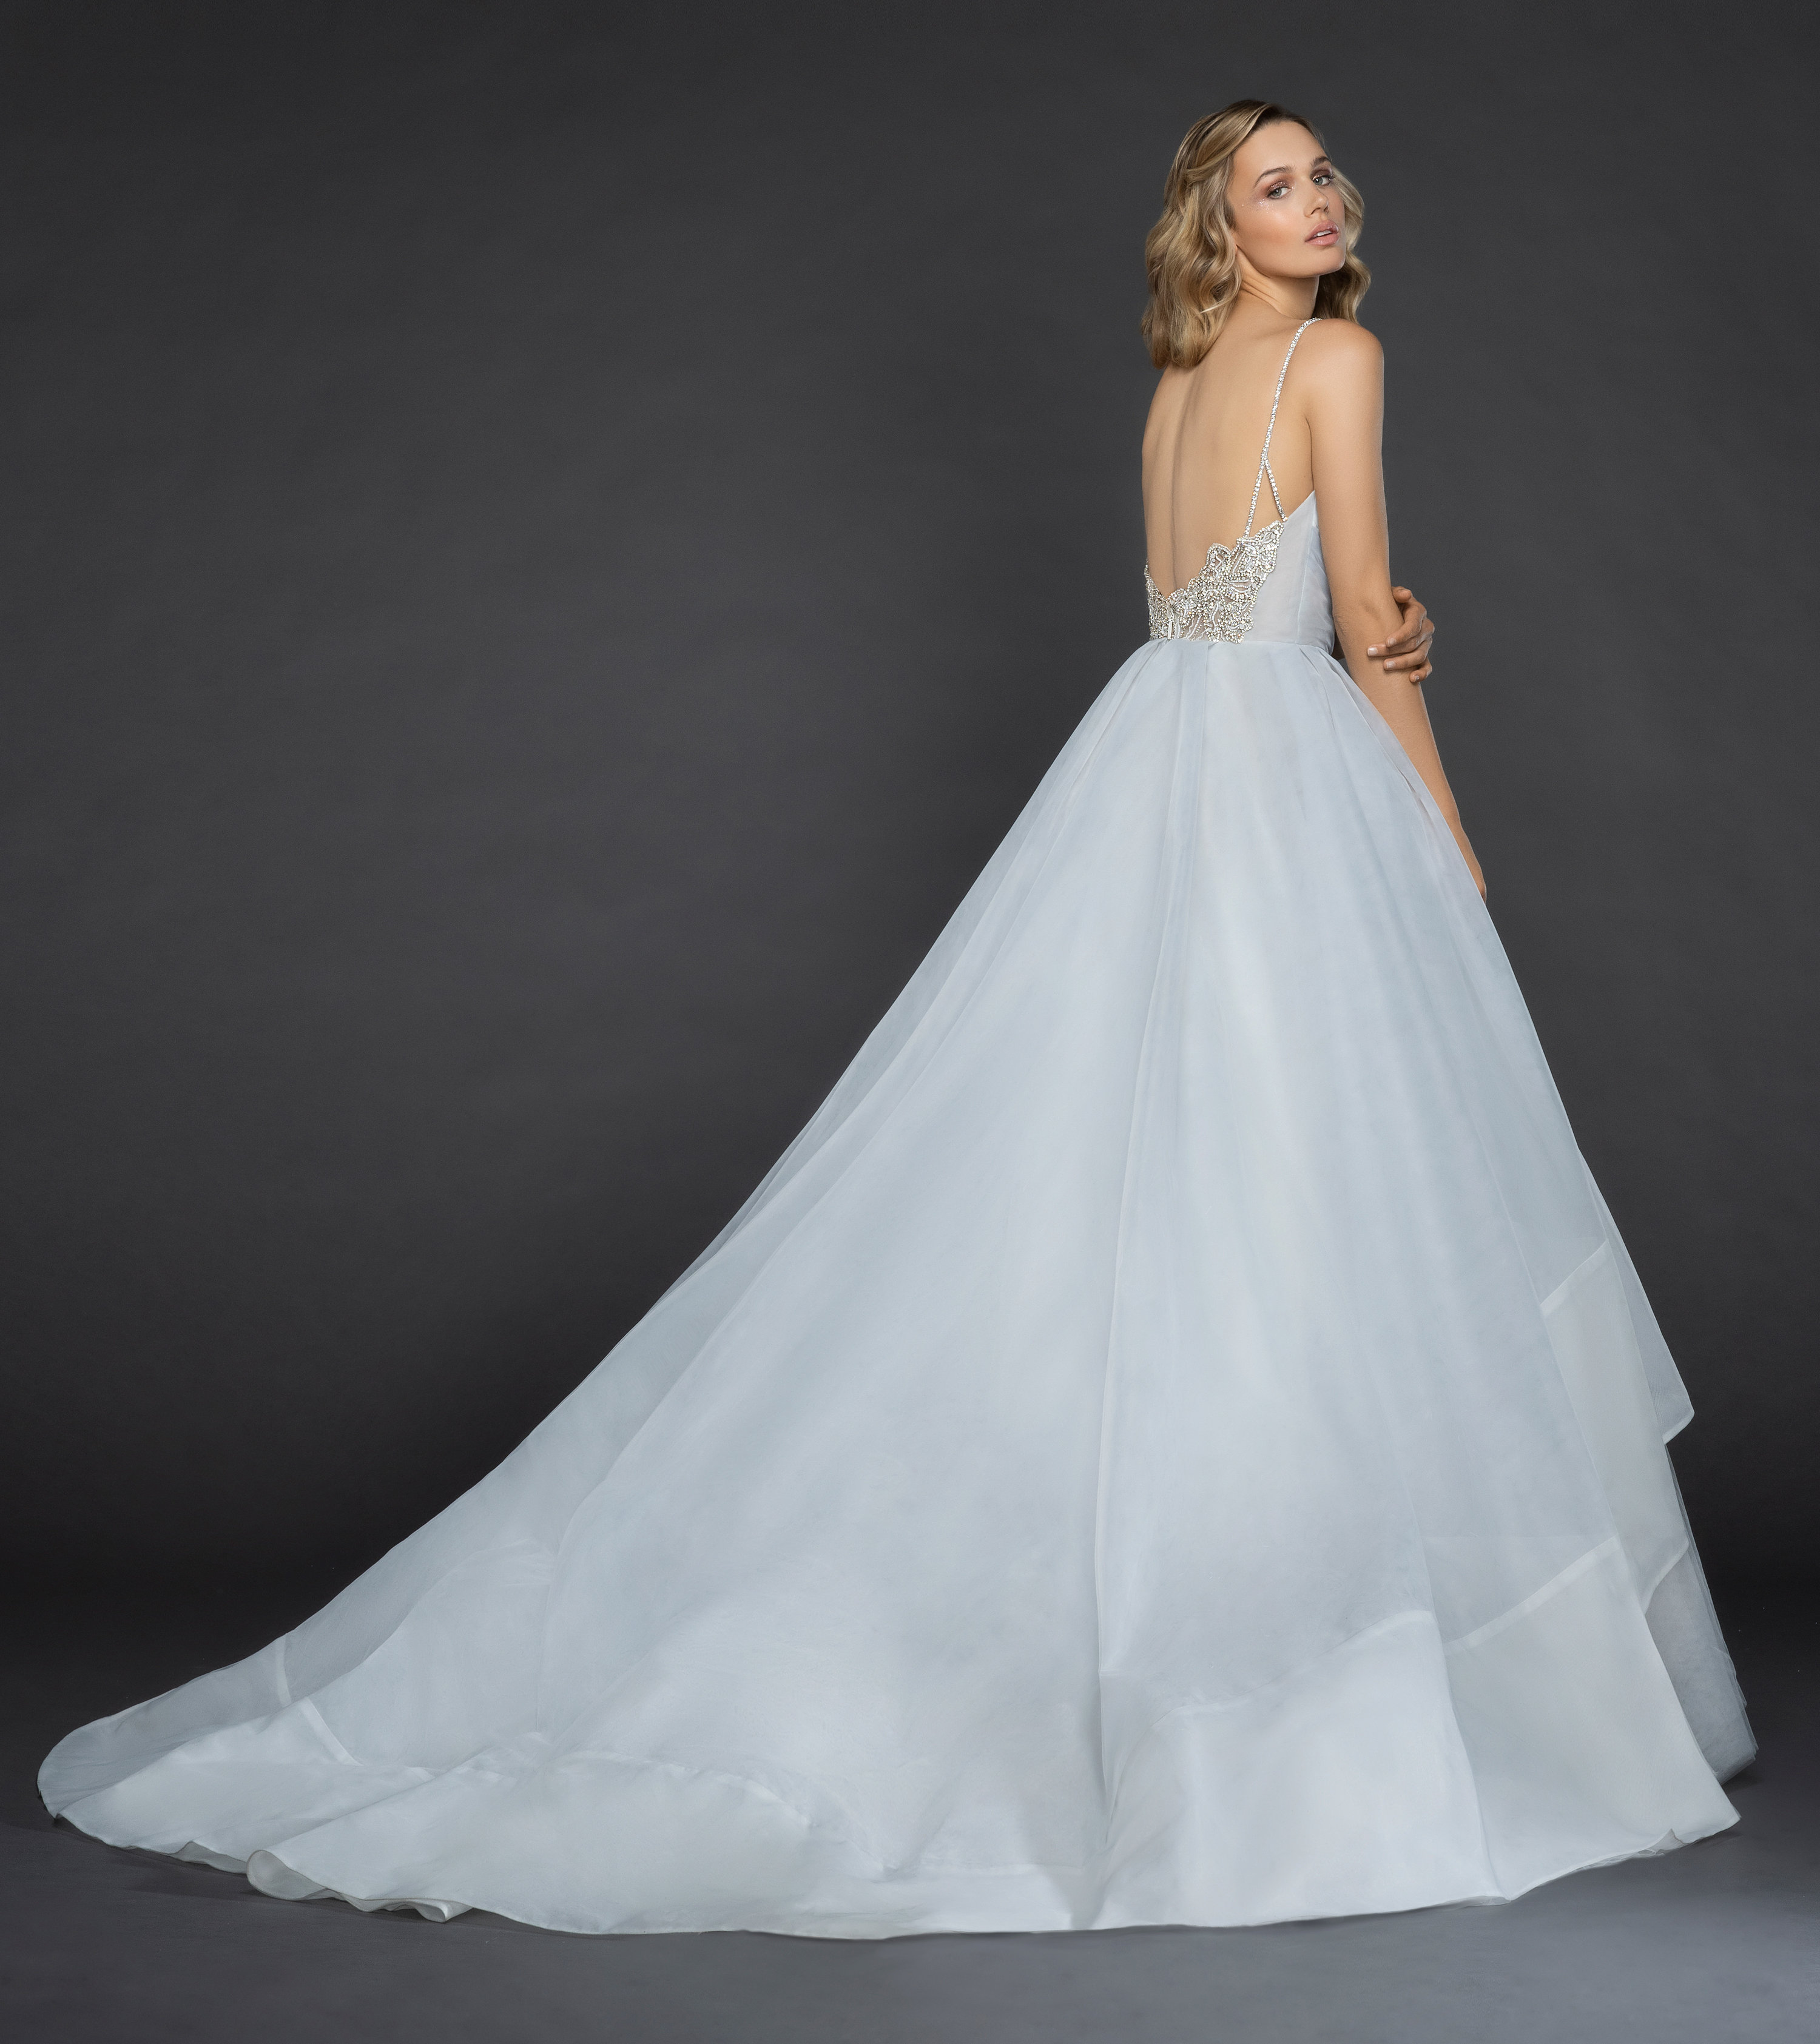 Bridal Gowns and Wedding Dresses by JLM Couture - Style 6862 Billie